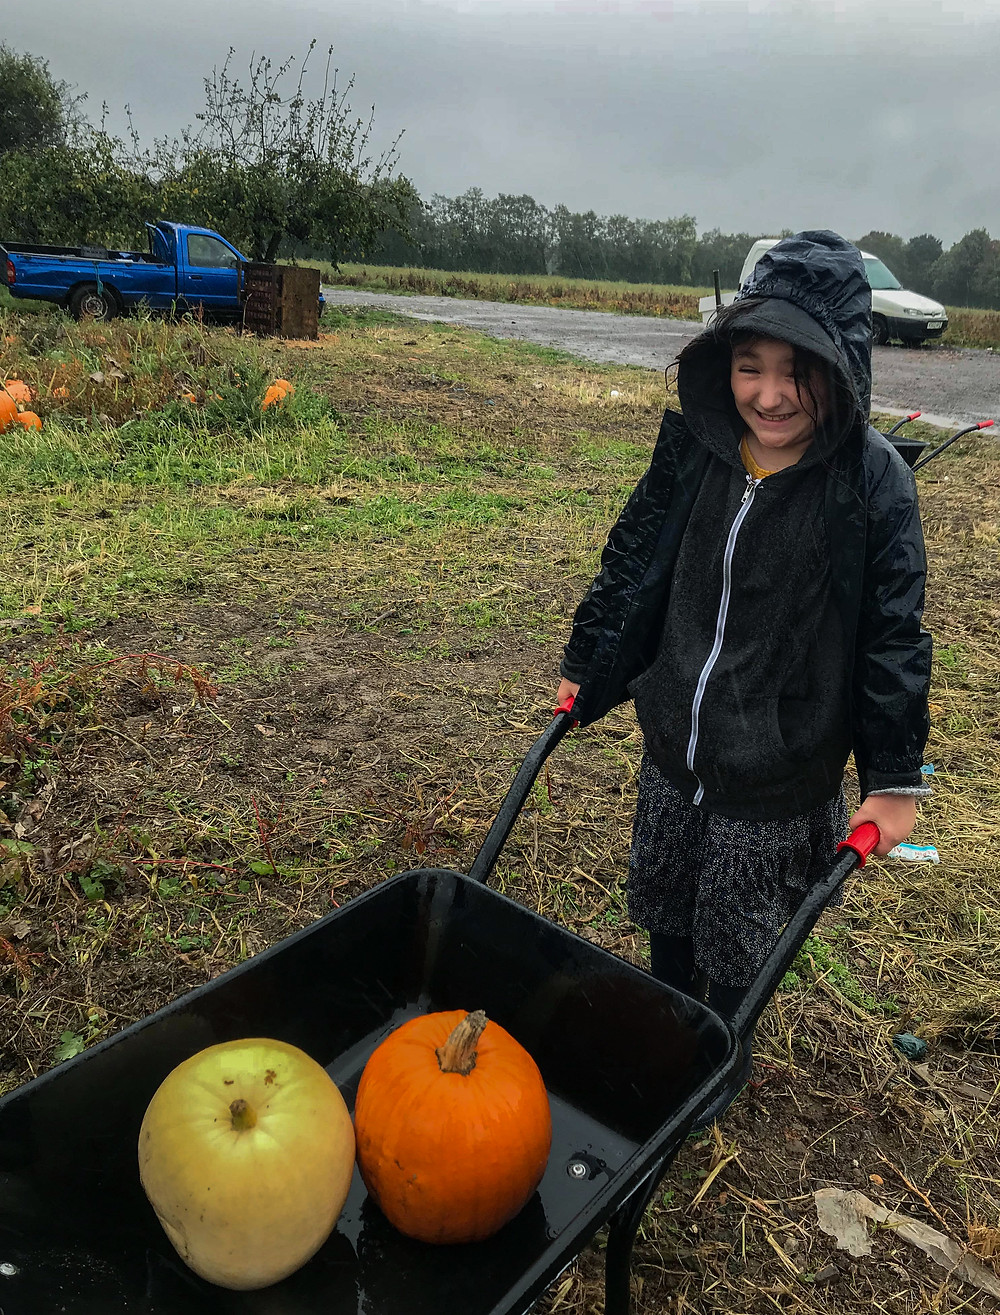 Ophelia and the wheelbarrow | Pumpkin Picking at Hewitt's Farm | Pumpkin Risotto Recipe | Vegan and Gluten Free Recipe | The Dopey Vegan